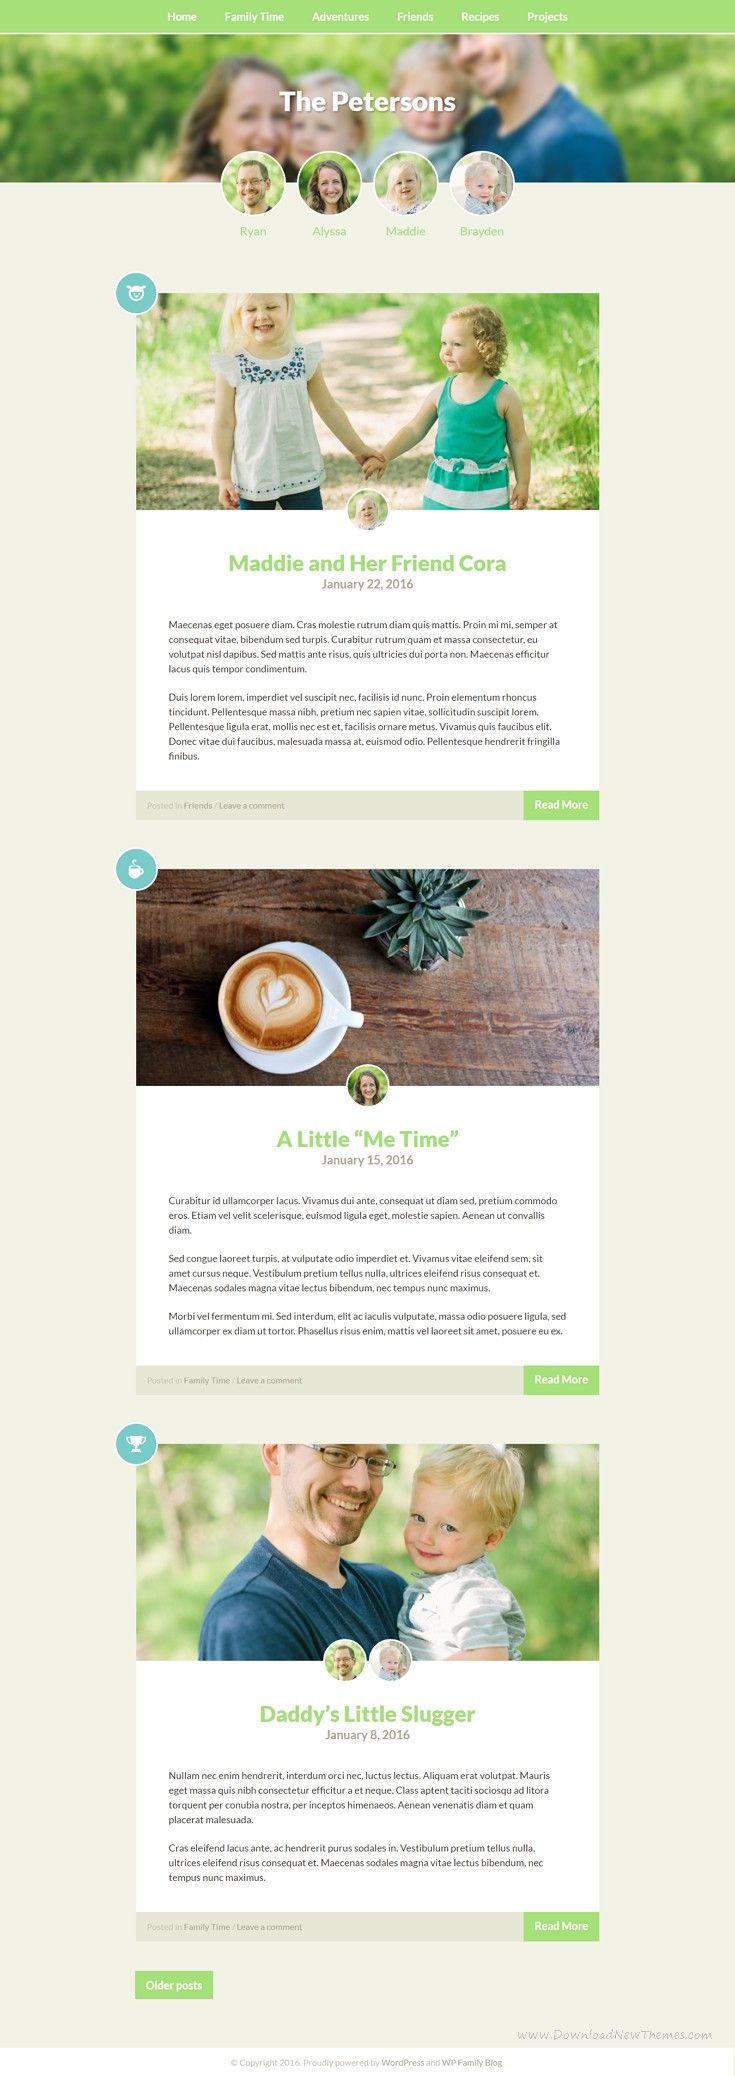 Family Blog is a beautiful, simple, and personal way to share your family's life online. It's the perfect WordPress theme for mommy #bloggers, proud dads, loving grandmas, household paparazzis and family #storytellers.